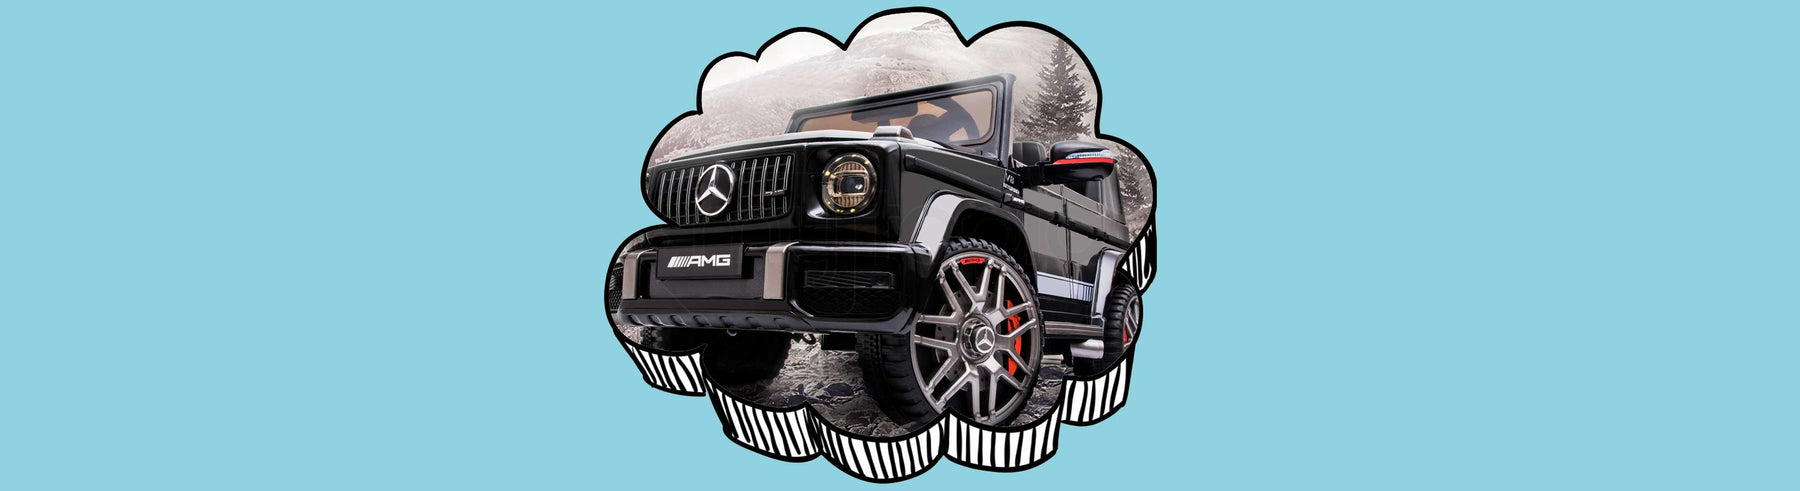 Mercedes Benz G63 AMG Licensed Kids Ride On Car with Remote Control